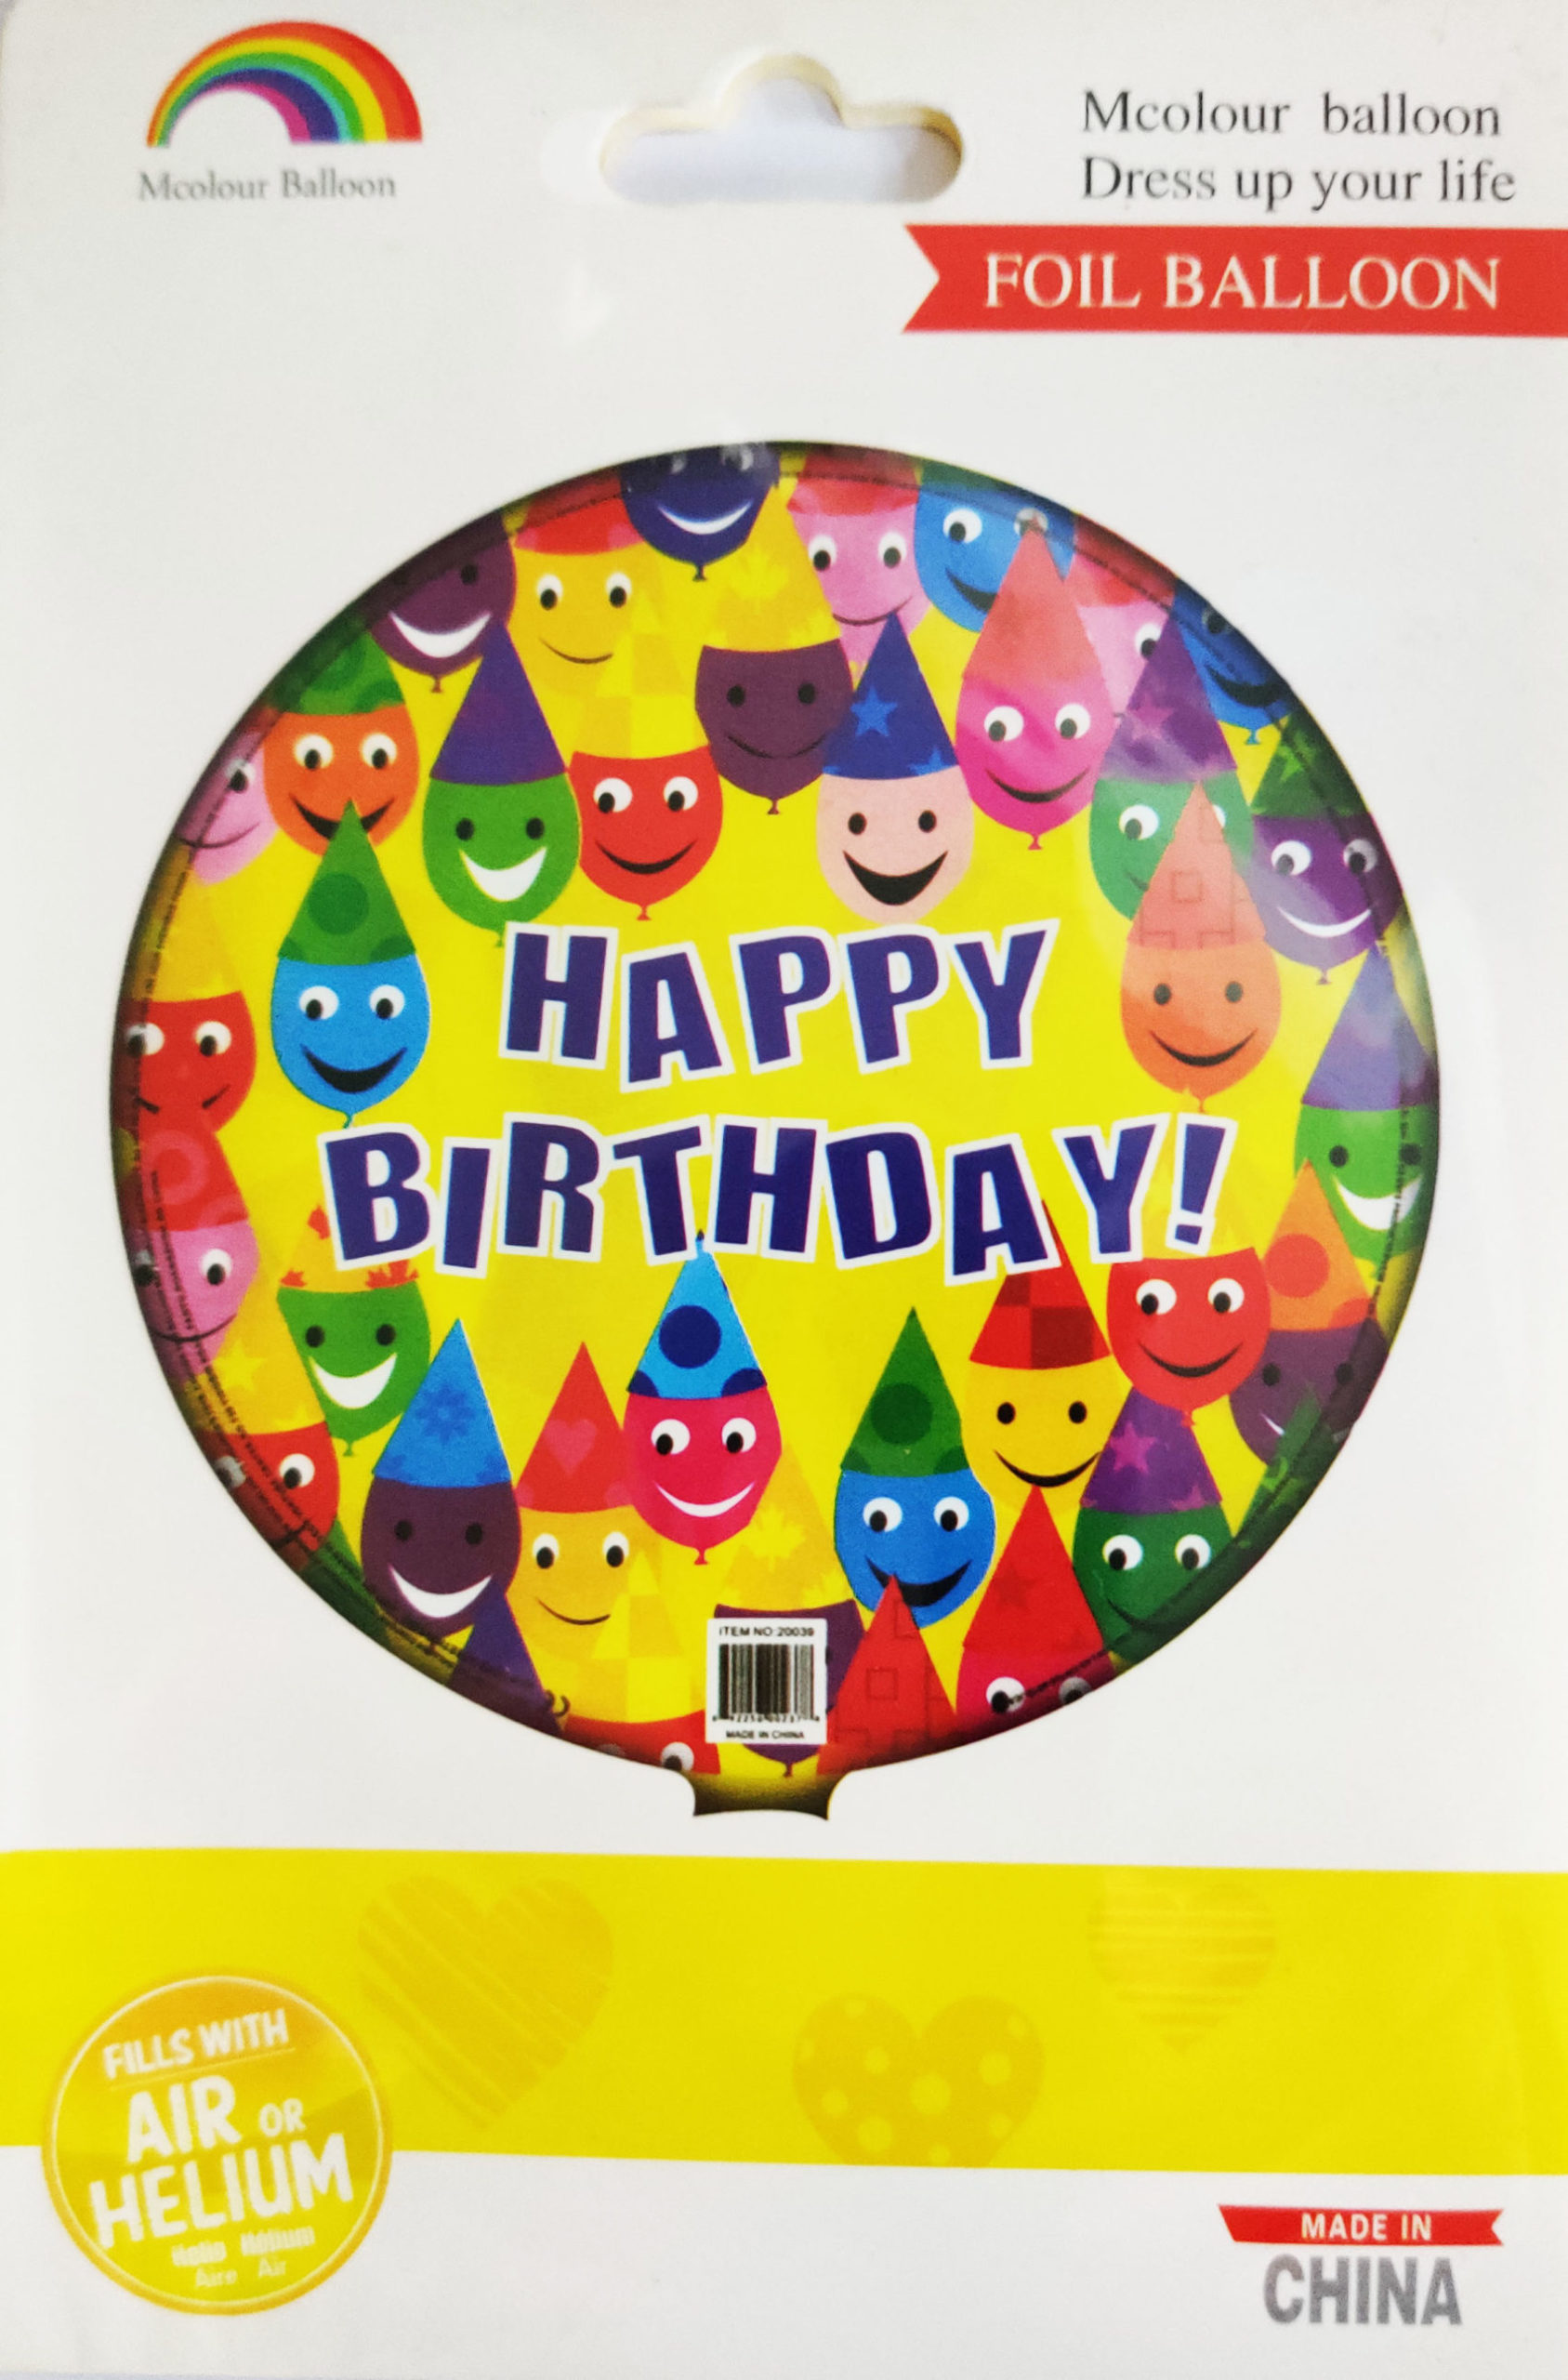 Happy Birthday 18inch Foil Balloon with smiley face balloons with party hats